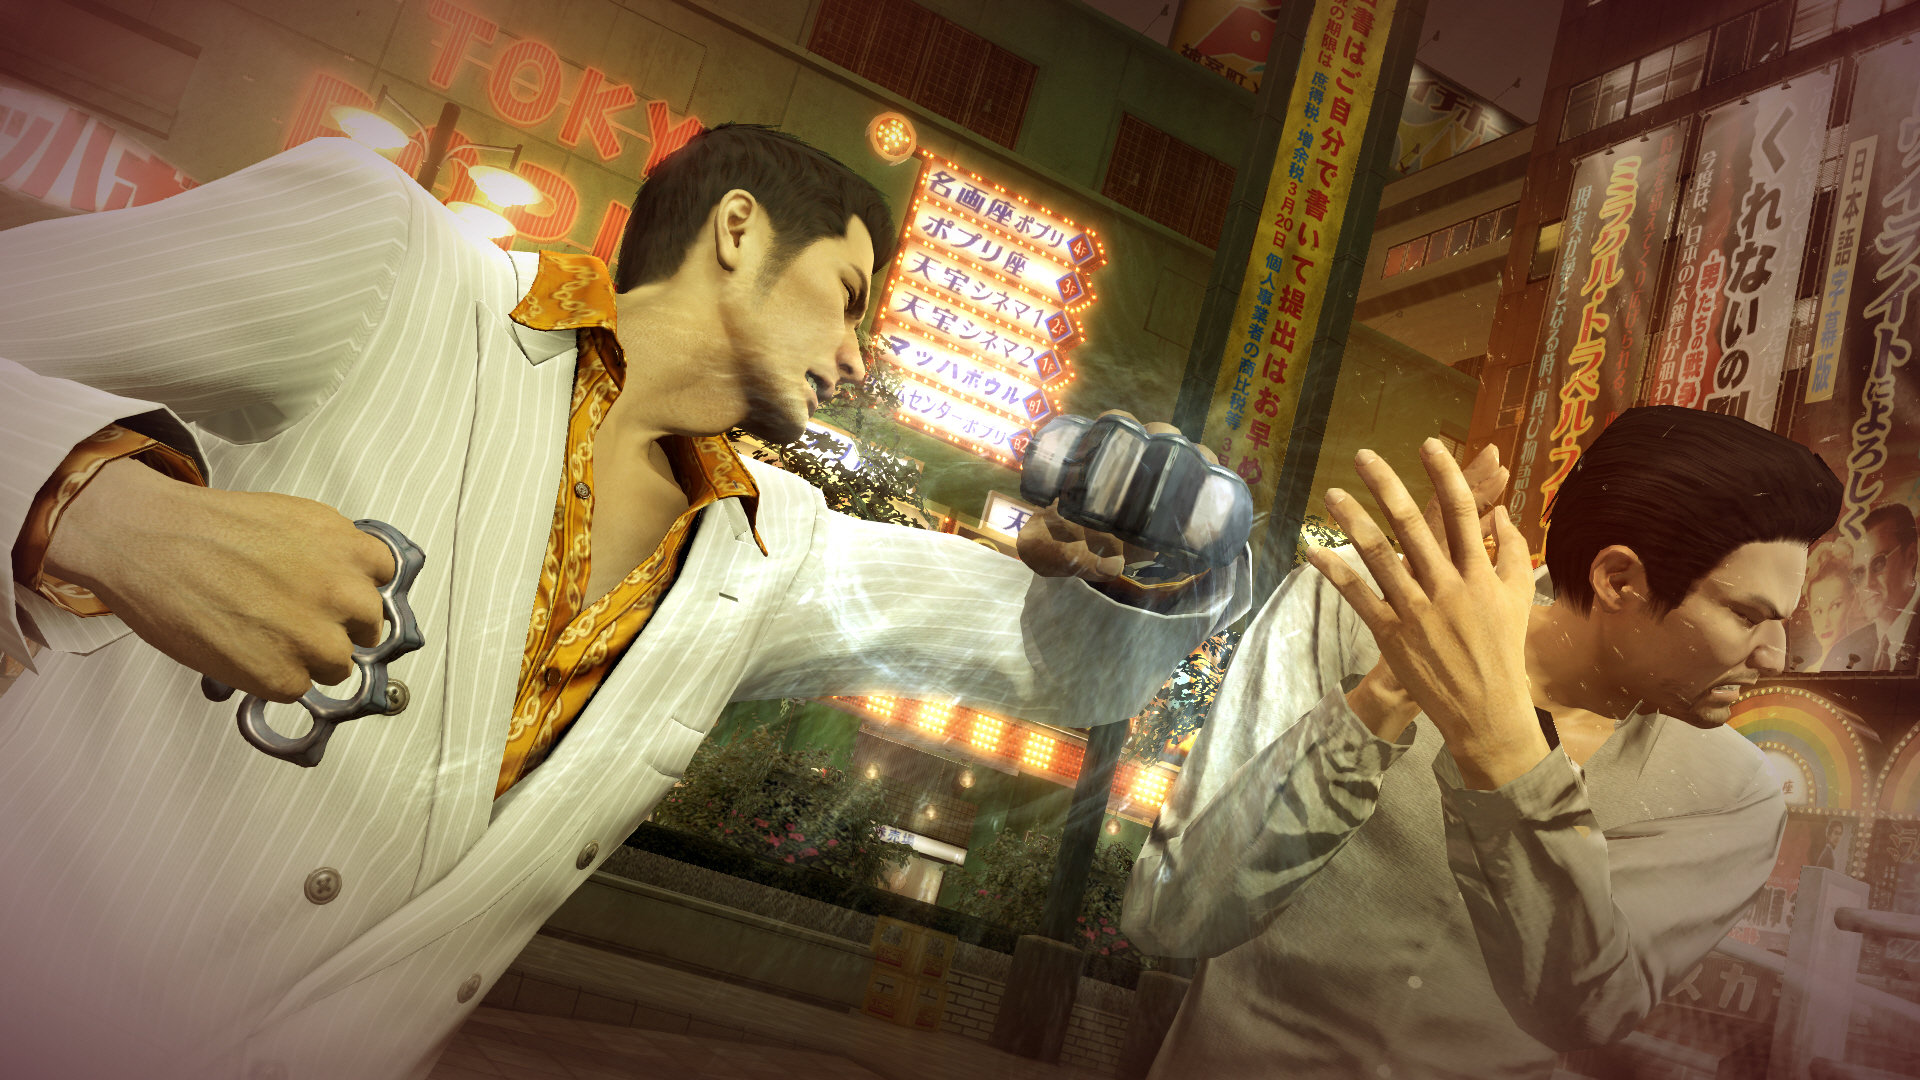 yakuza-0-screen-18-ps4-us-26sep16?$Media